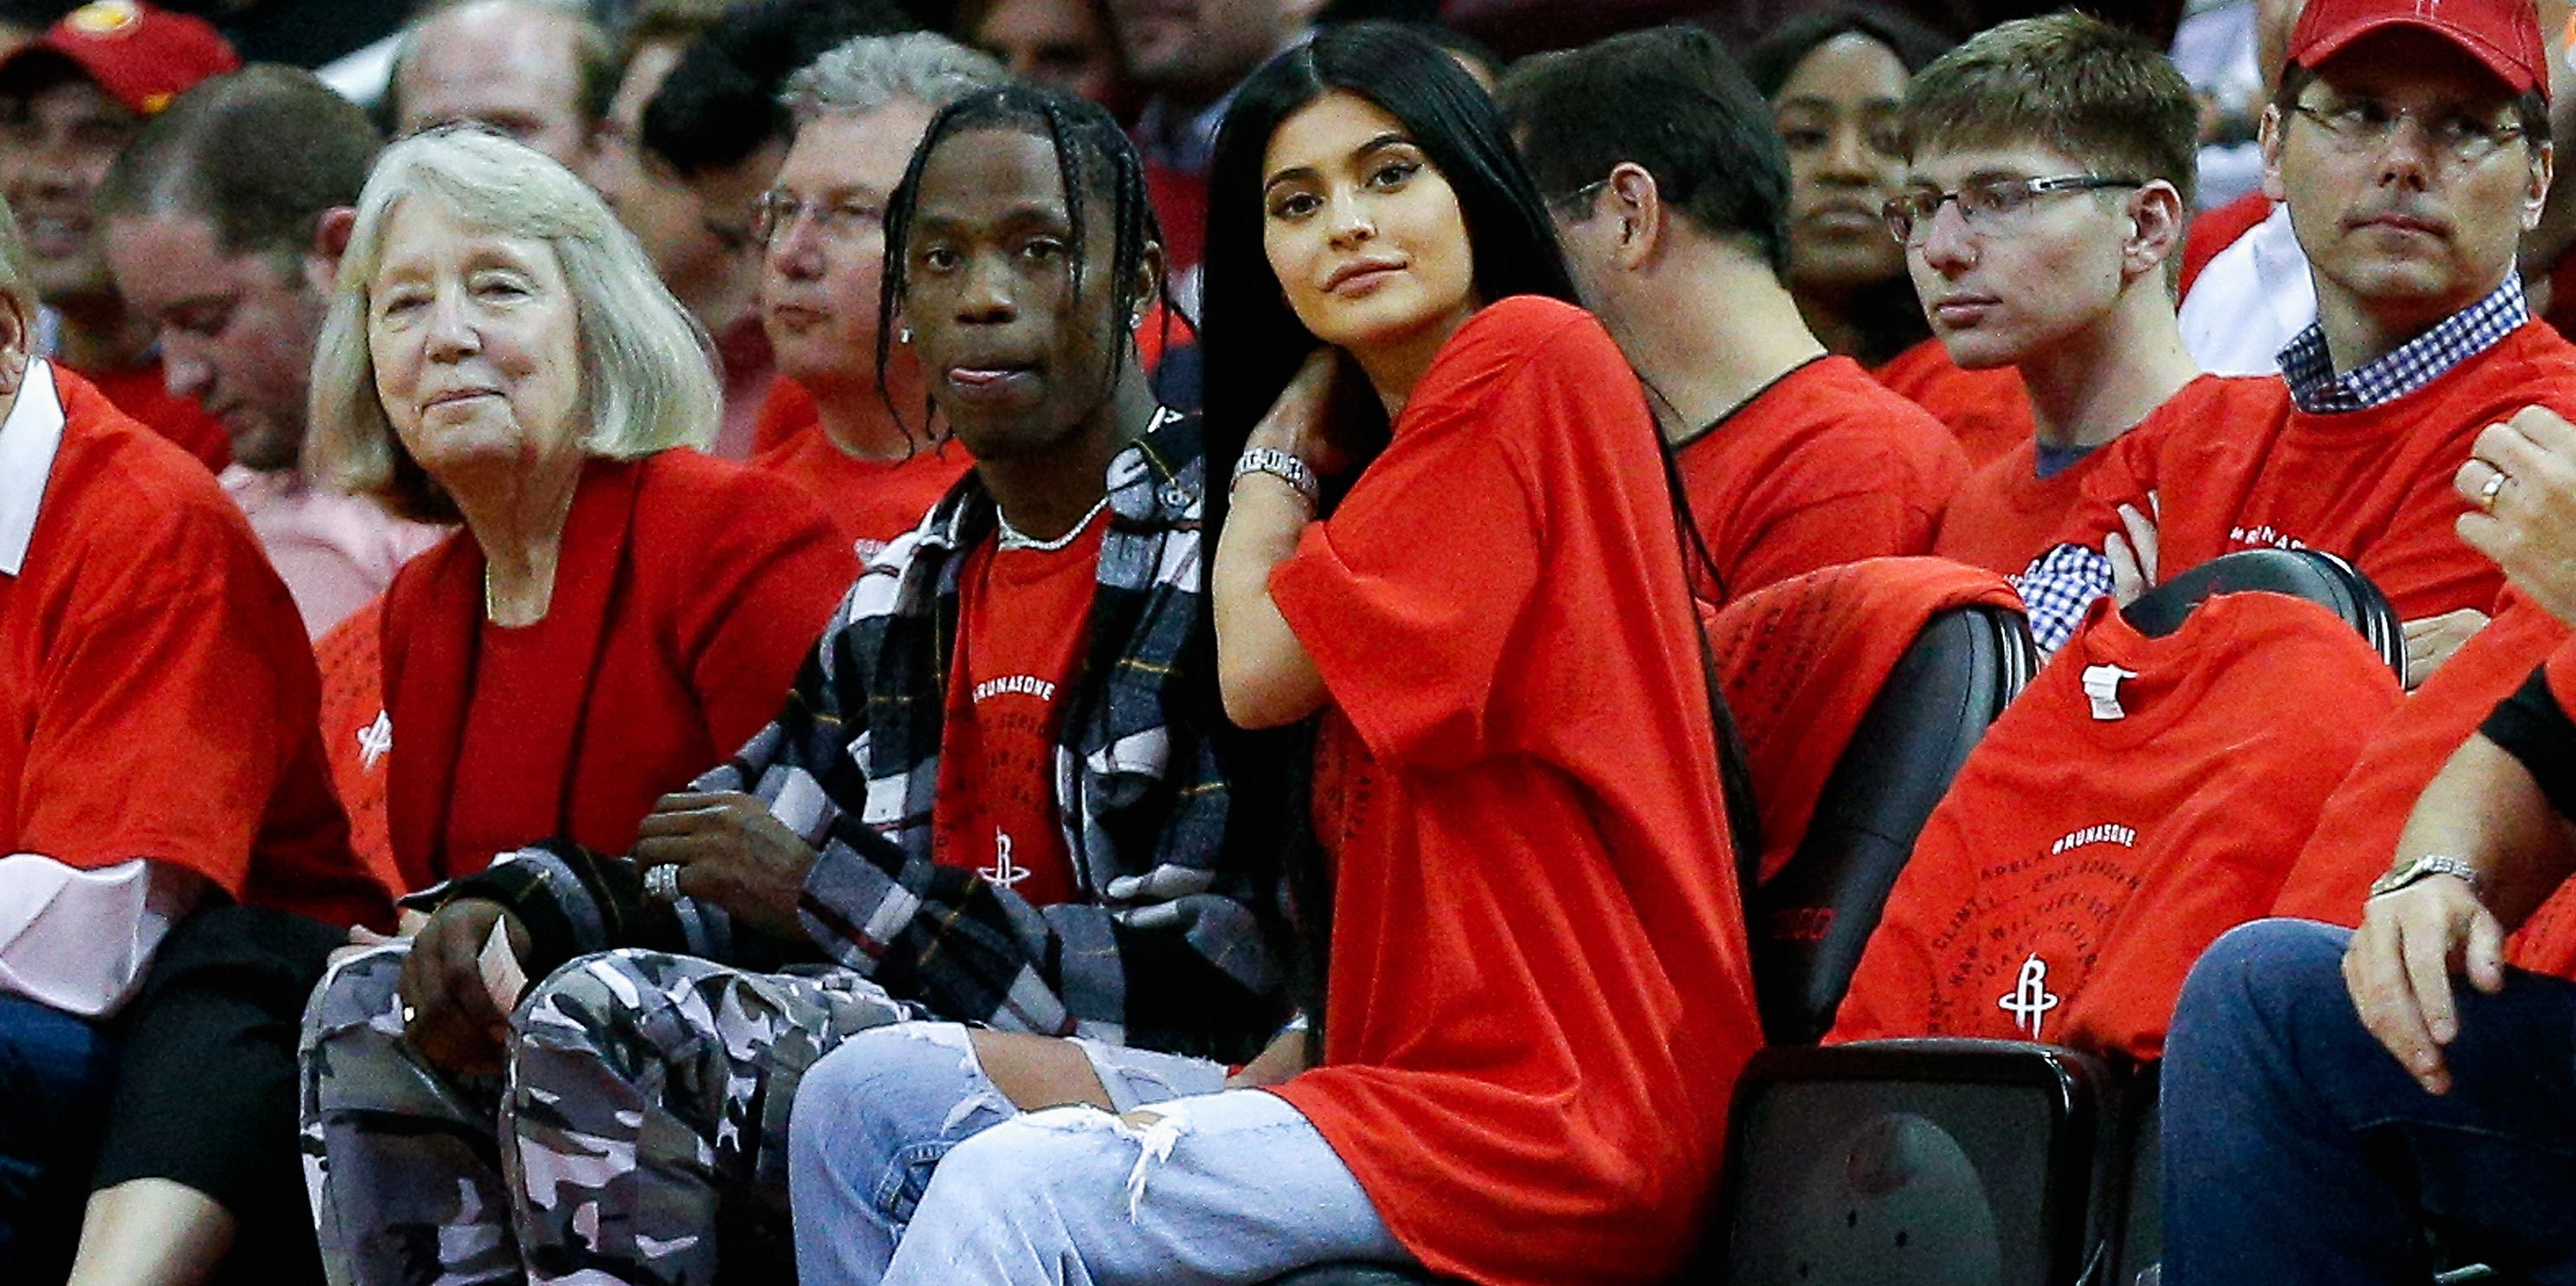 Kylie Jenner and Travis Scott's Relationship Has Reached the Matching Tattoos Stage